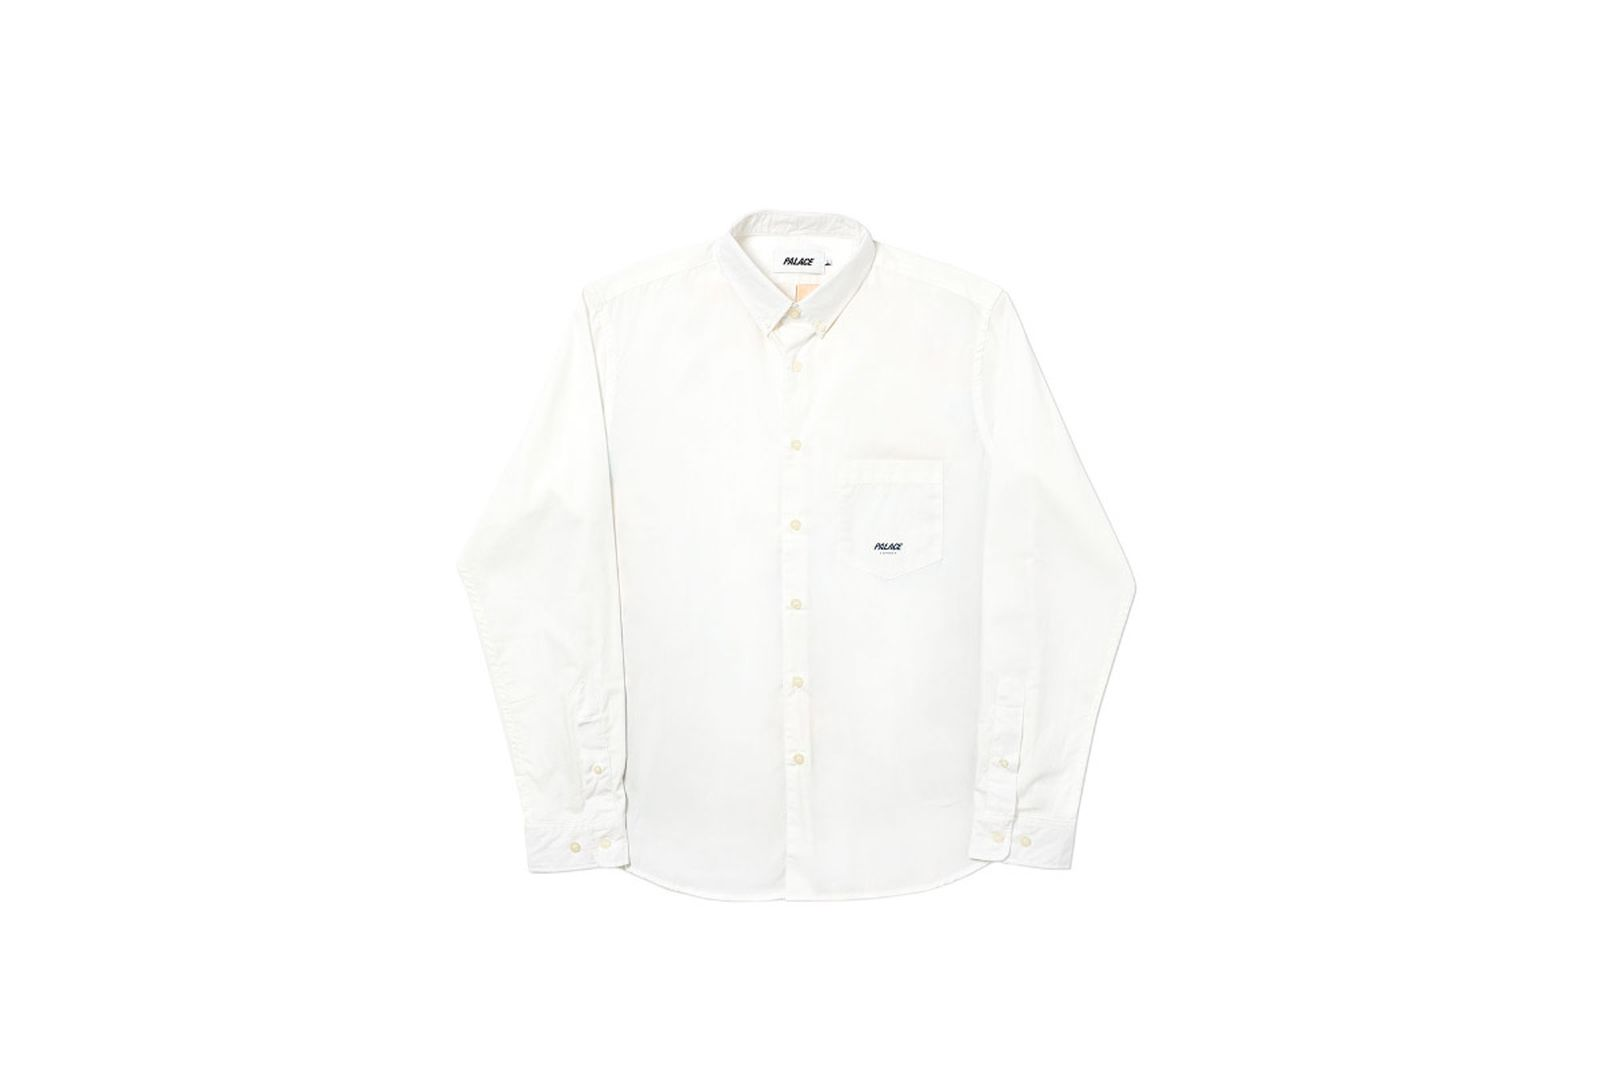 Palace 2019 Autumn Shirt Persailles white front fw19